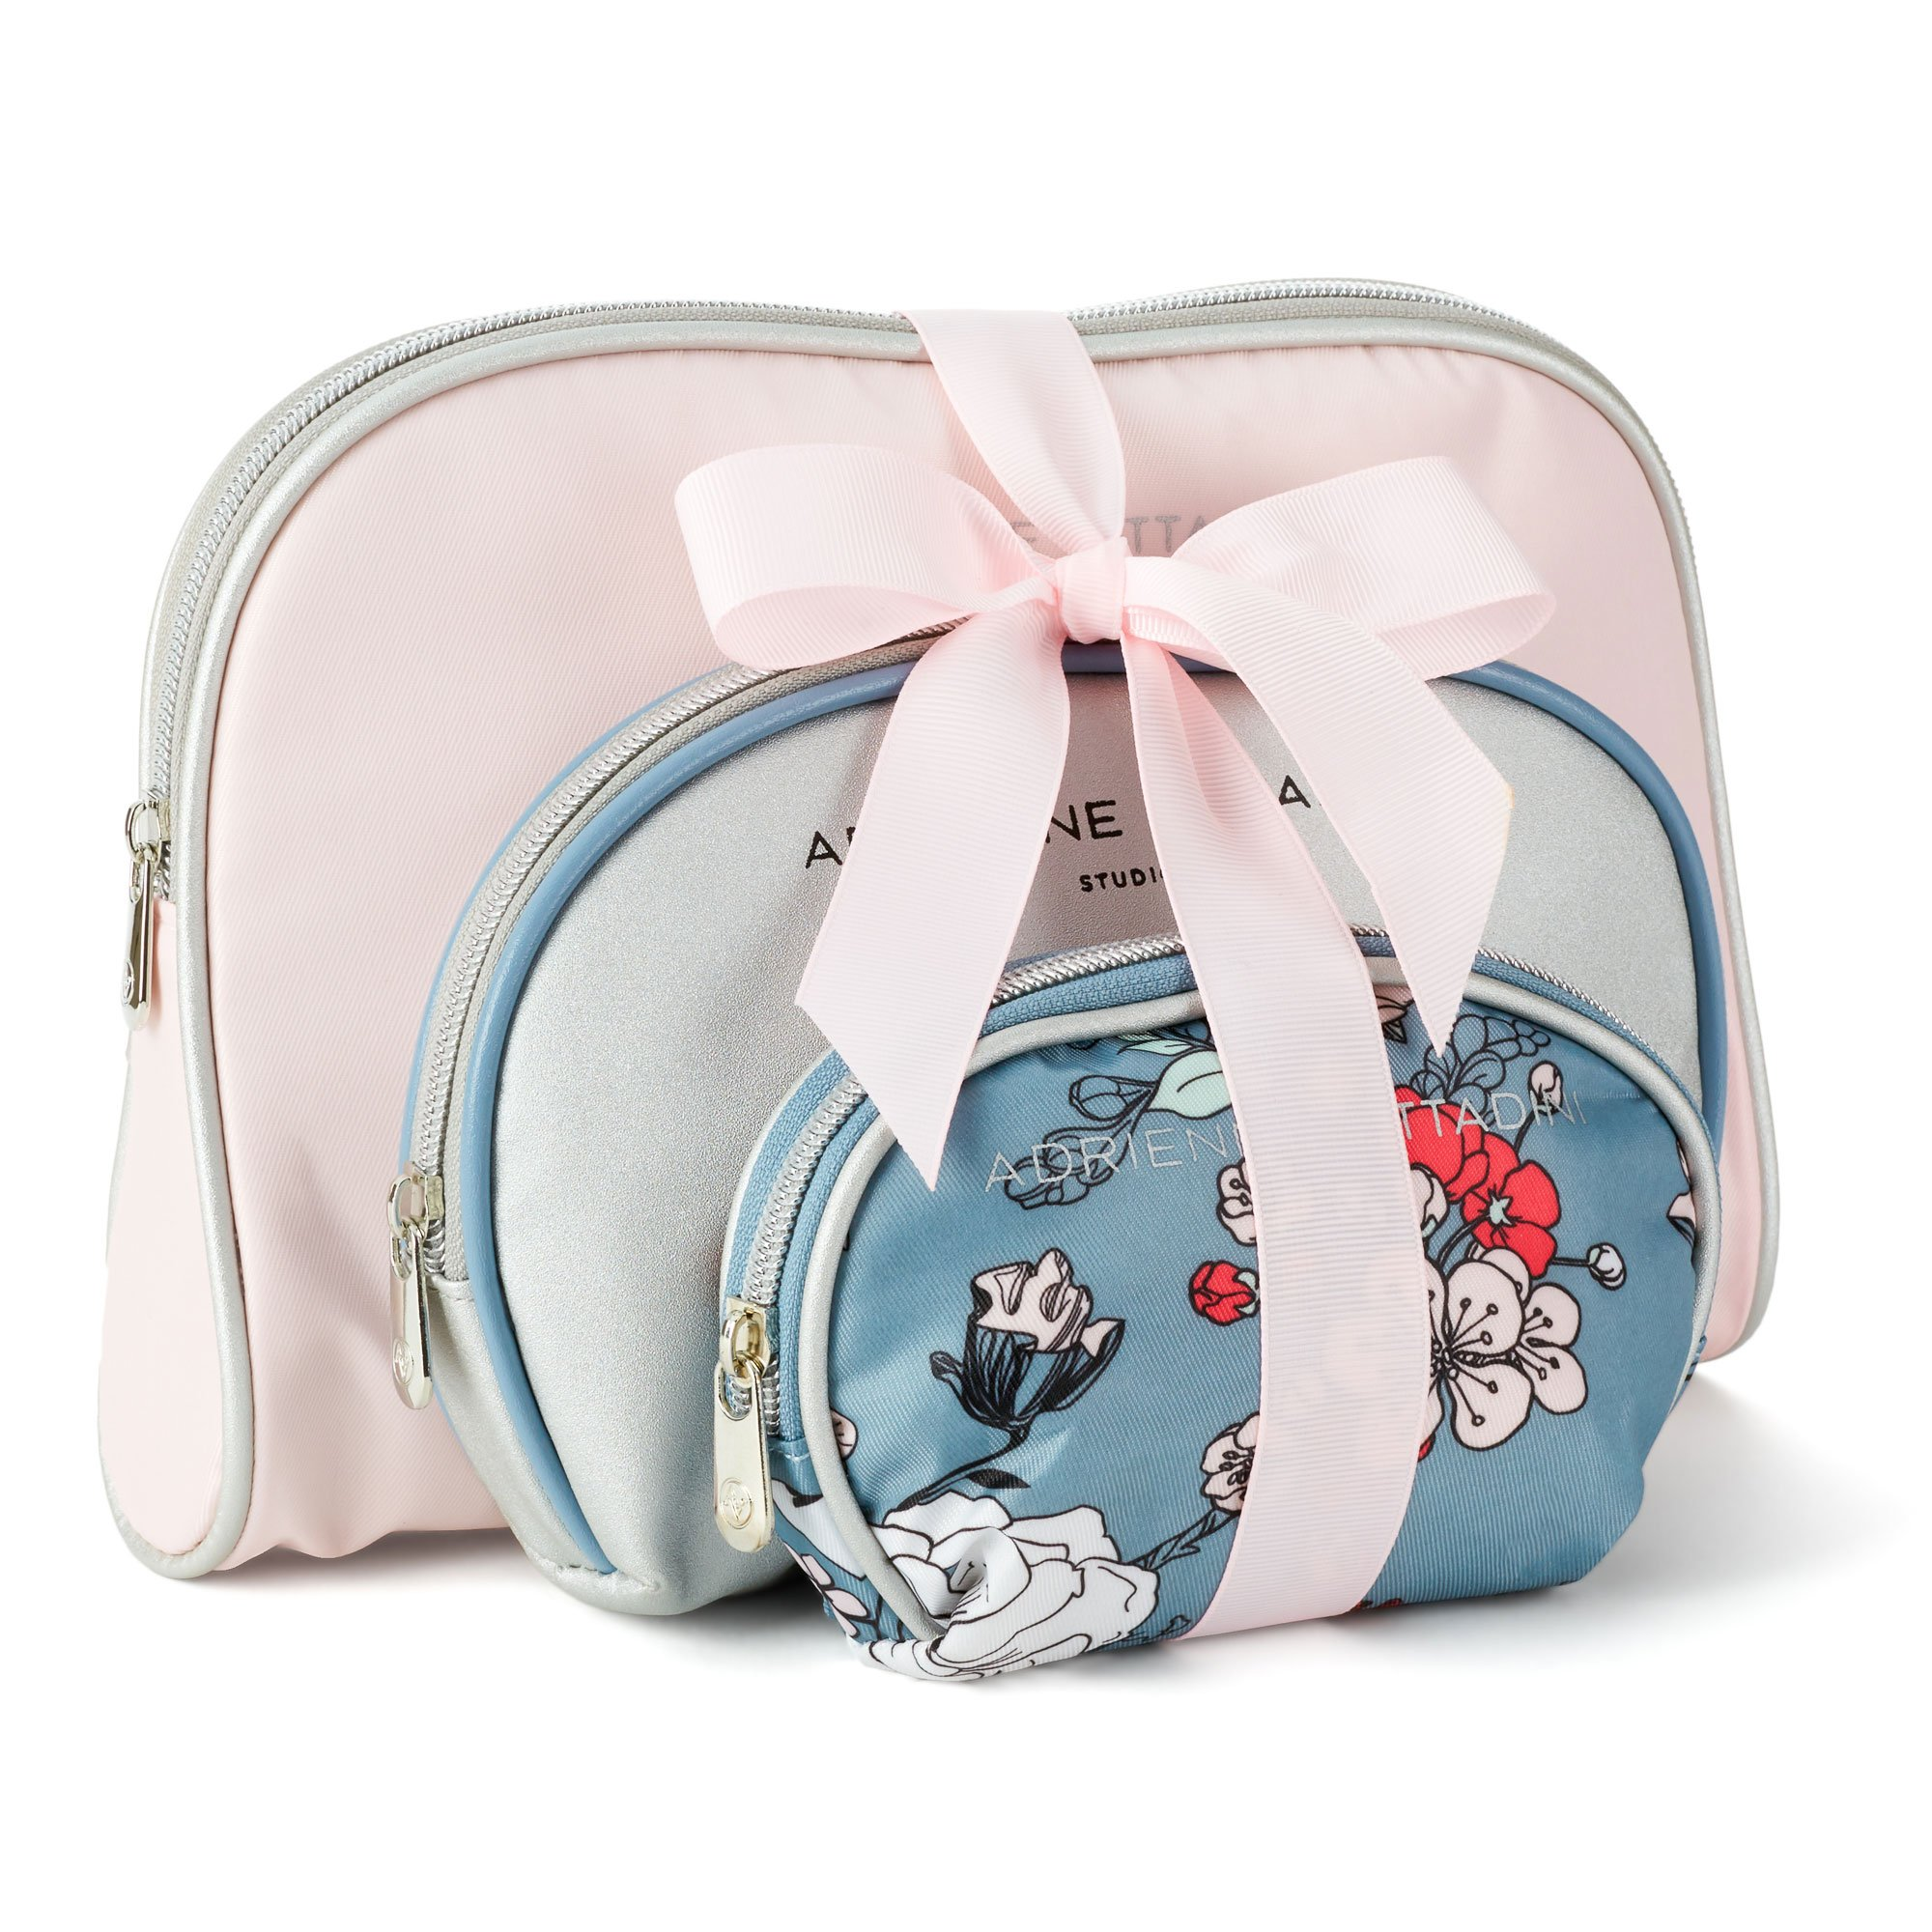 Adrienne Vittadini Cosmetic Makeup Bags: Compact Travel Toiletry Bag Set in Small, Medium and Large for Women and Girls - Pale Pink & Blue Floral by ADRIENNE VITTADINI (Image #1)